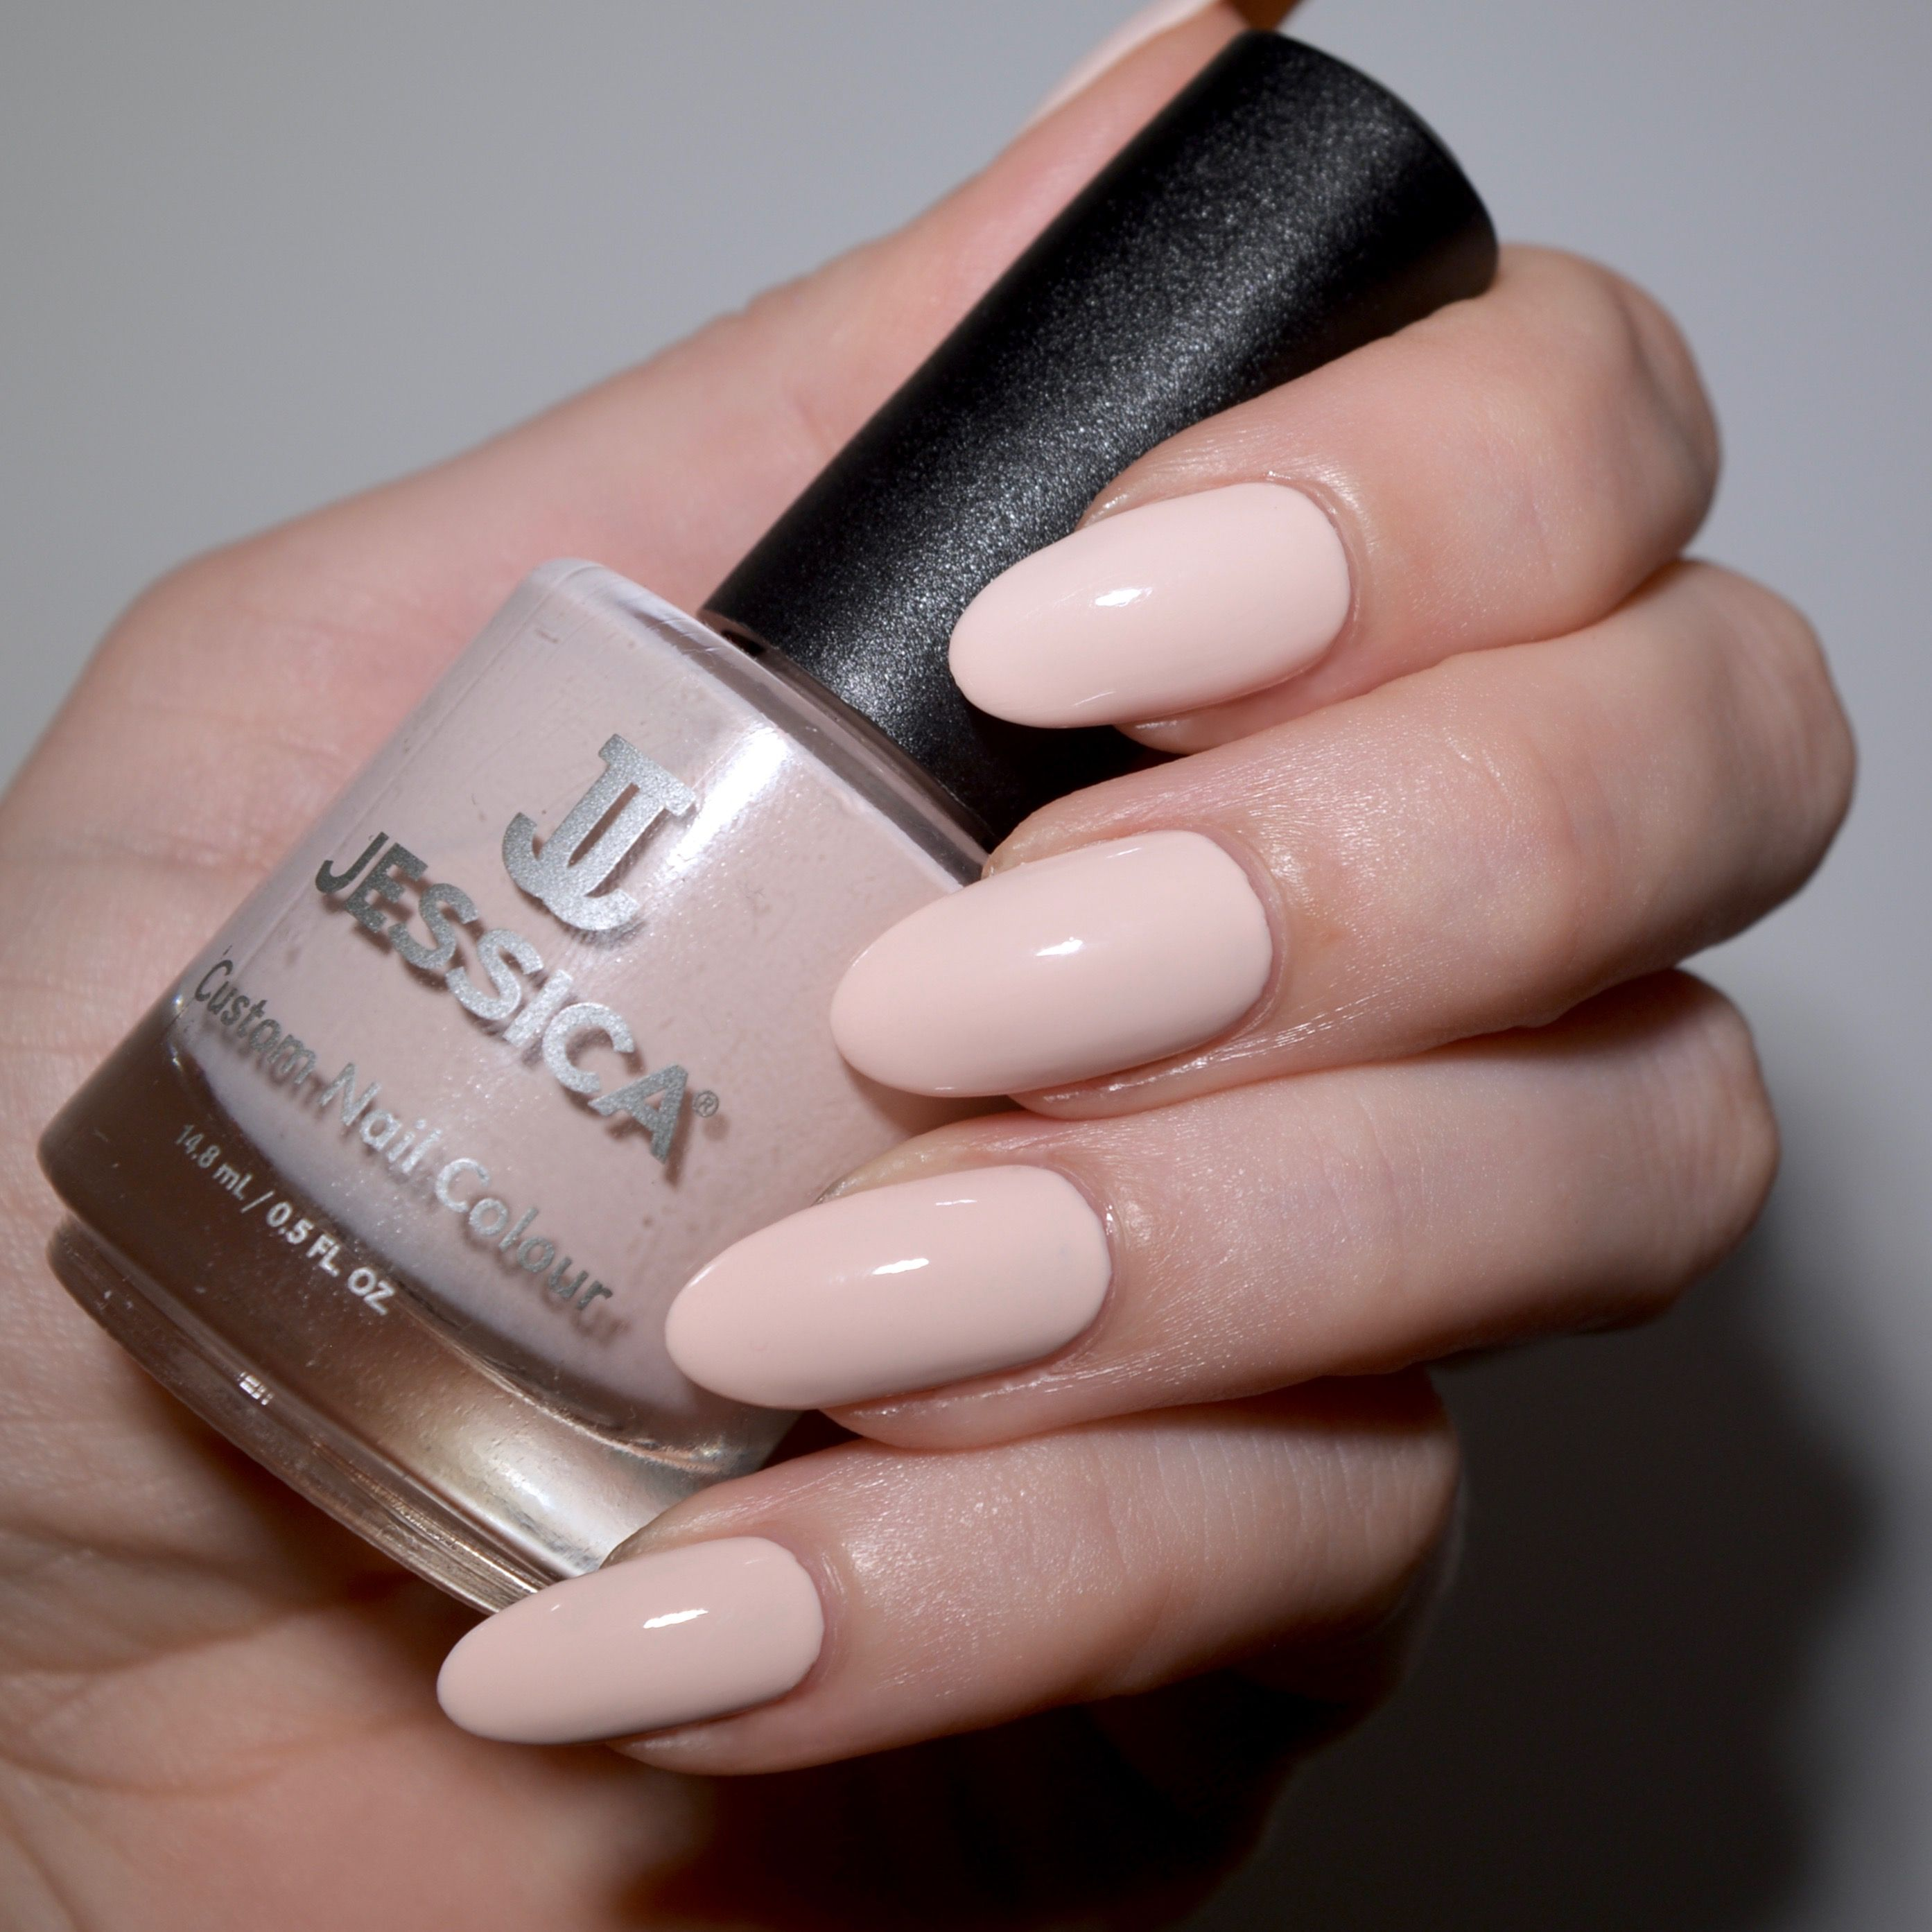 SEND NUDES: Jessica Silhouette Collection Review | Pinterest ...